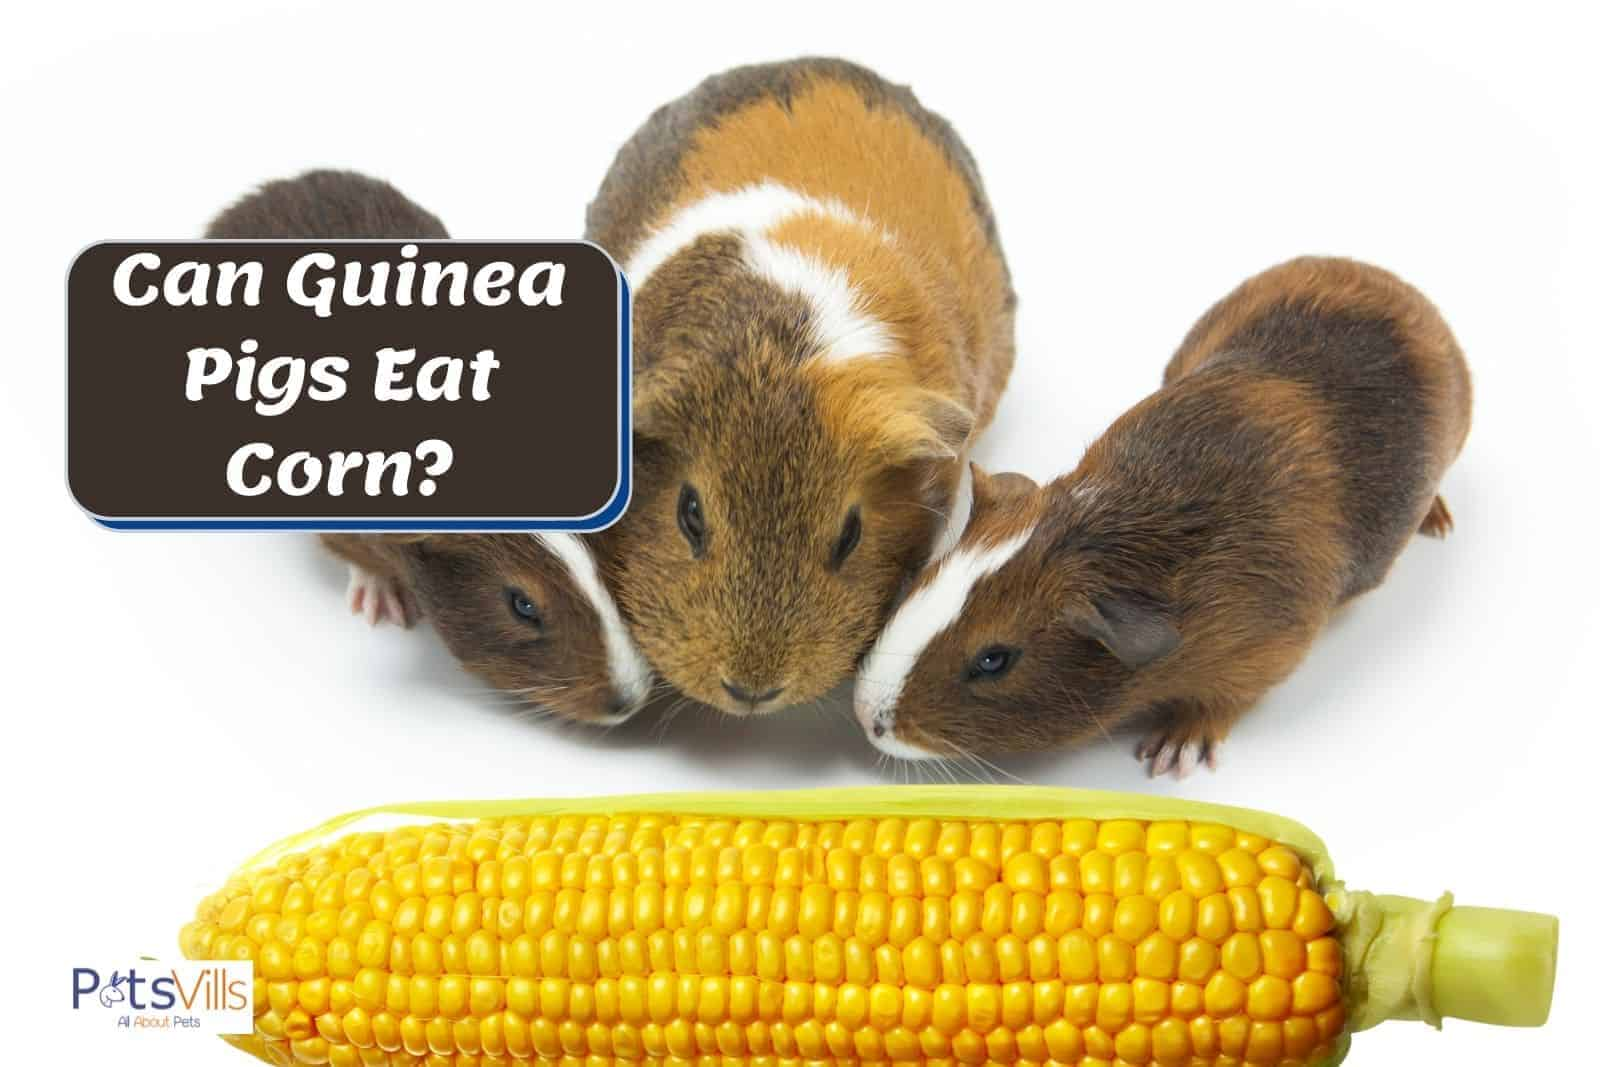 three guinea pigs smelling a corn but can guinea pigs eat corn?